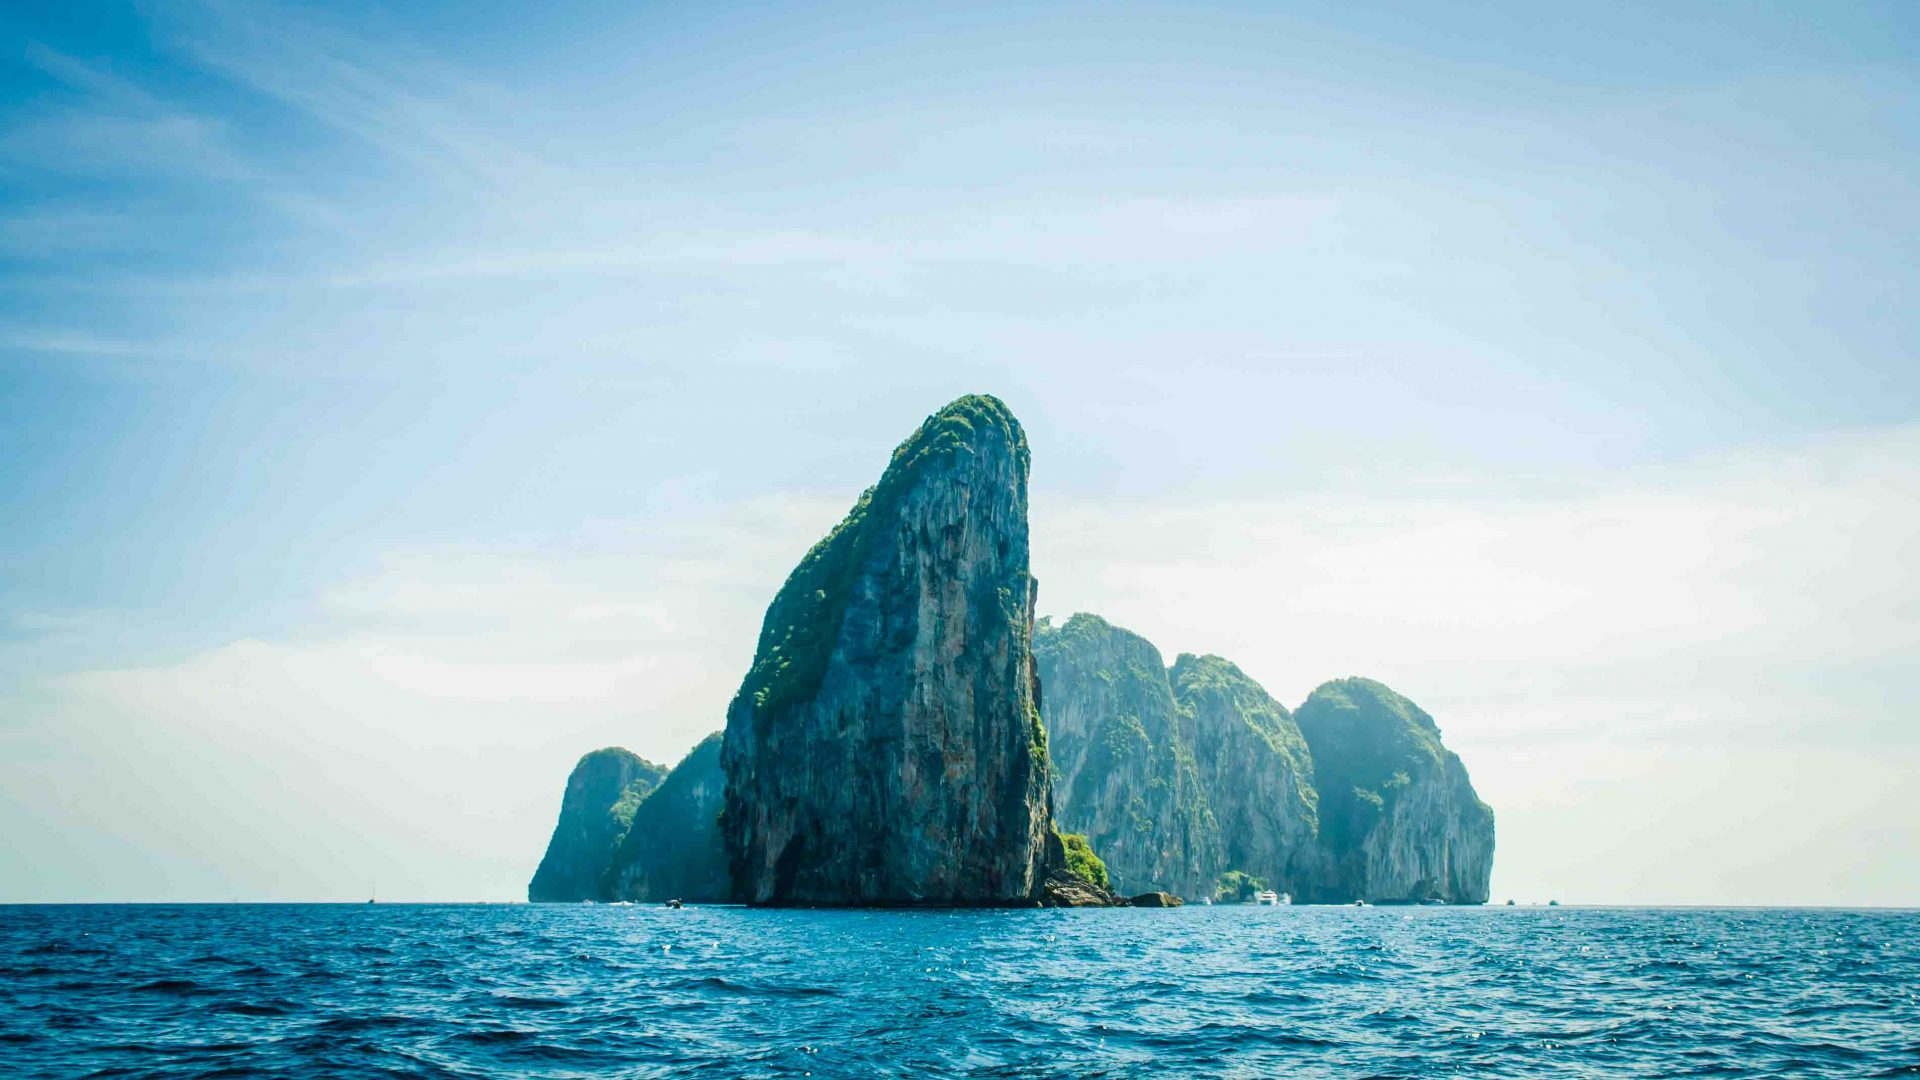 The cliffs of Koh Phang Nga in Thailand jut out of the seas.